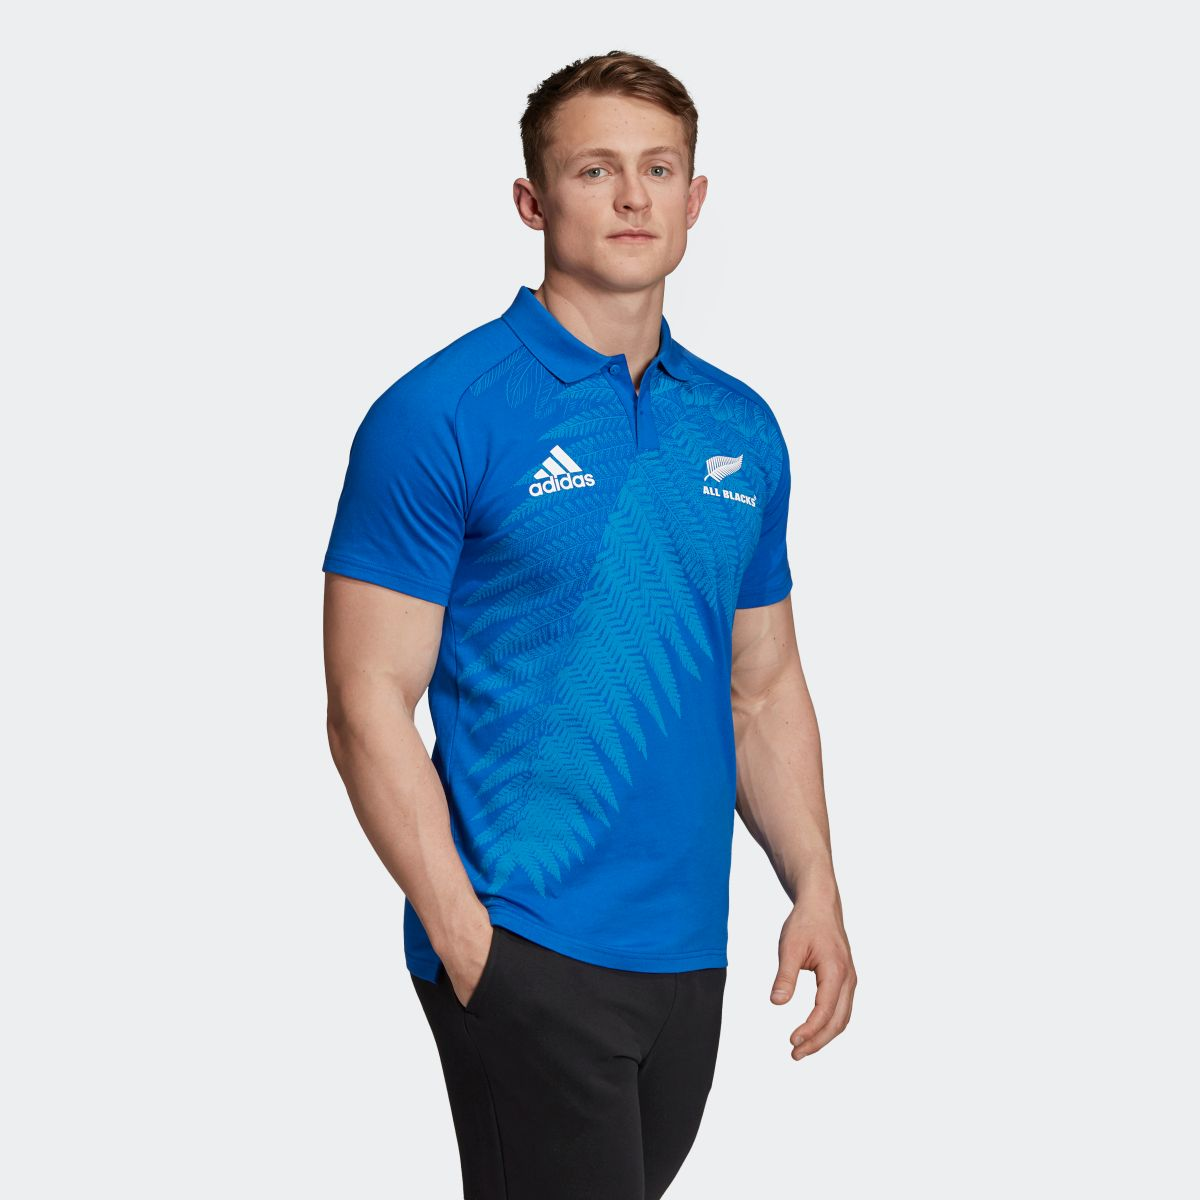 adidas polo rugby